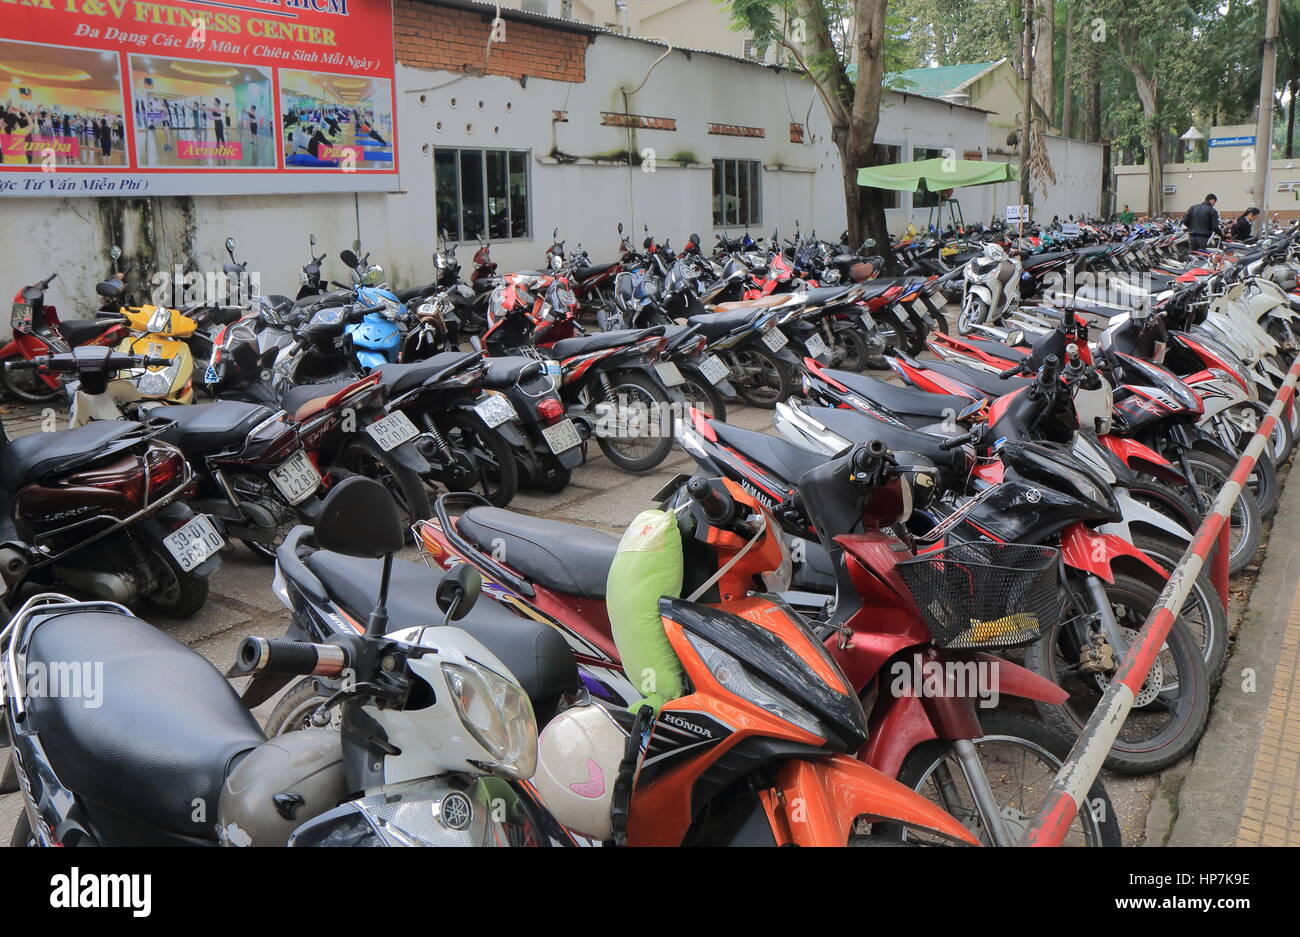 free motorcycle parking knightsbridge  Parking Motorbike Stock Photos